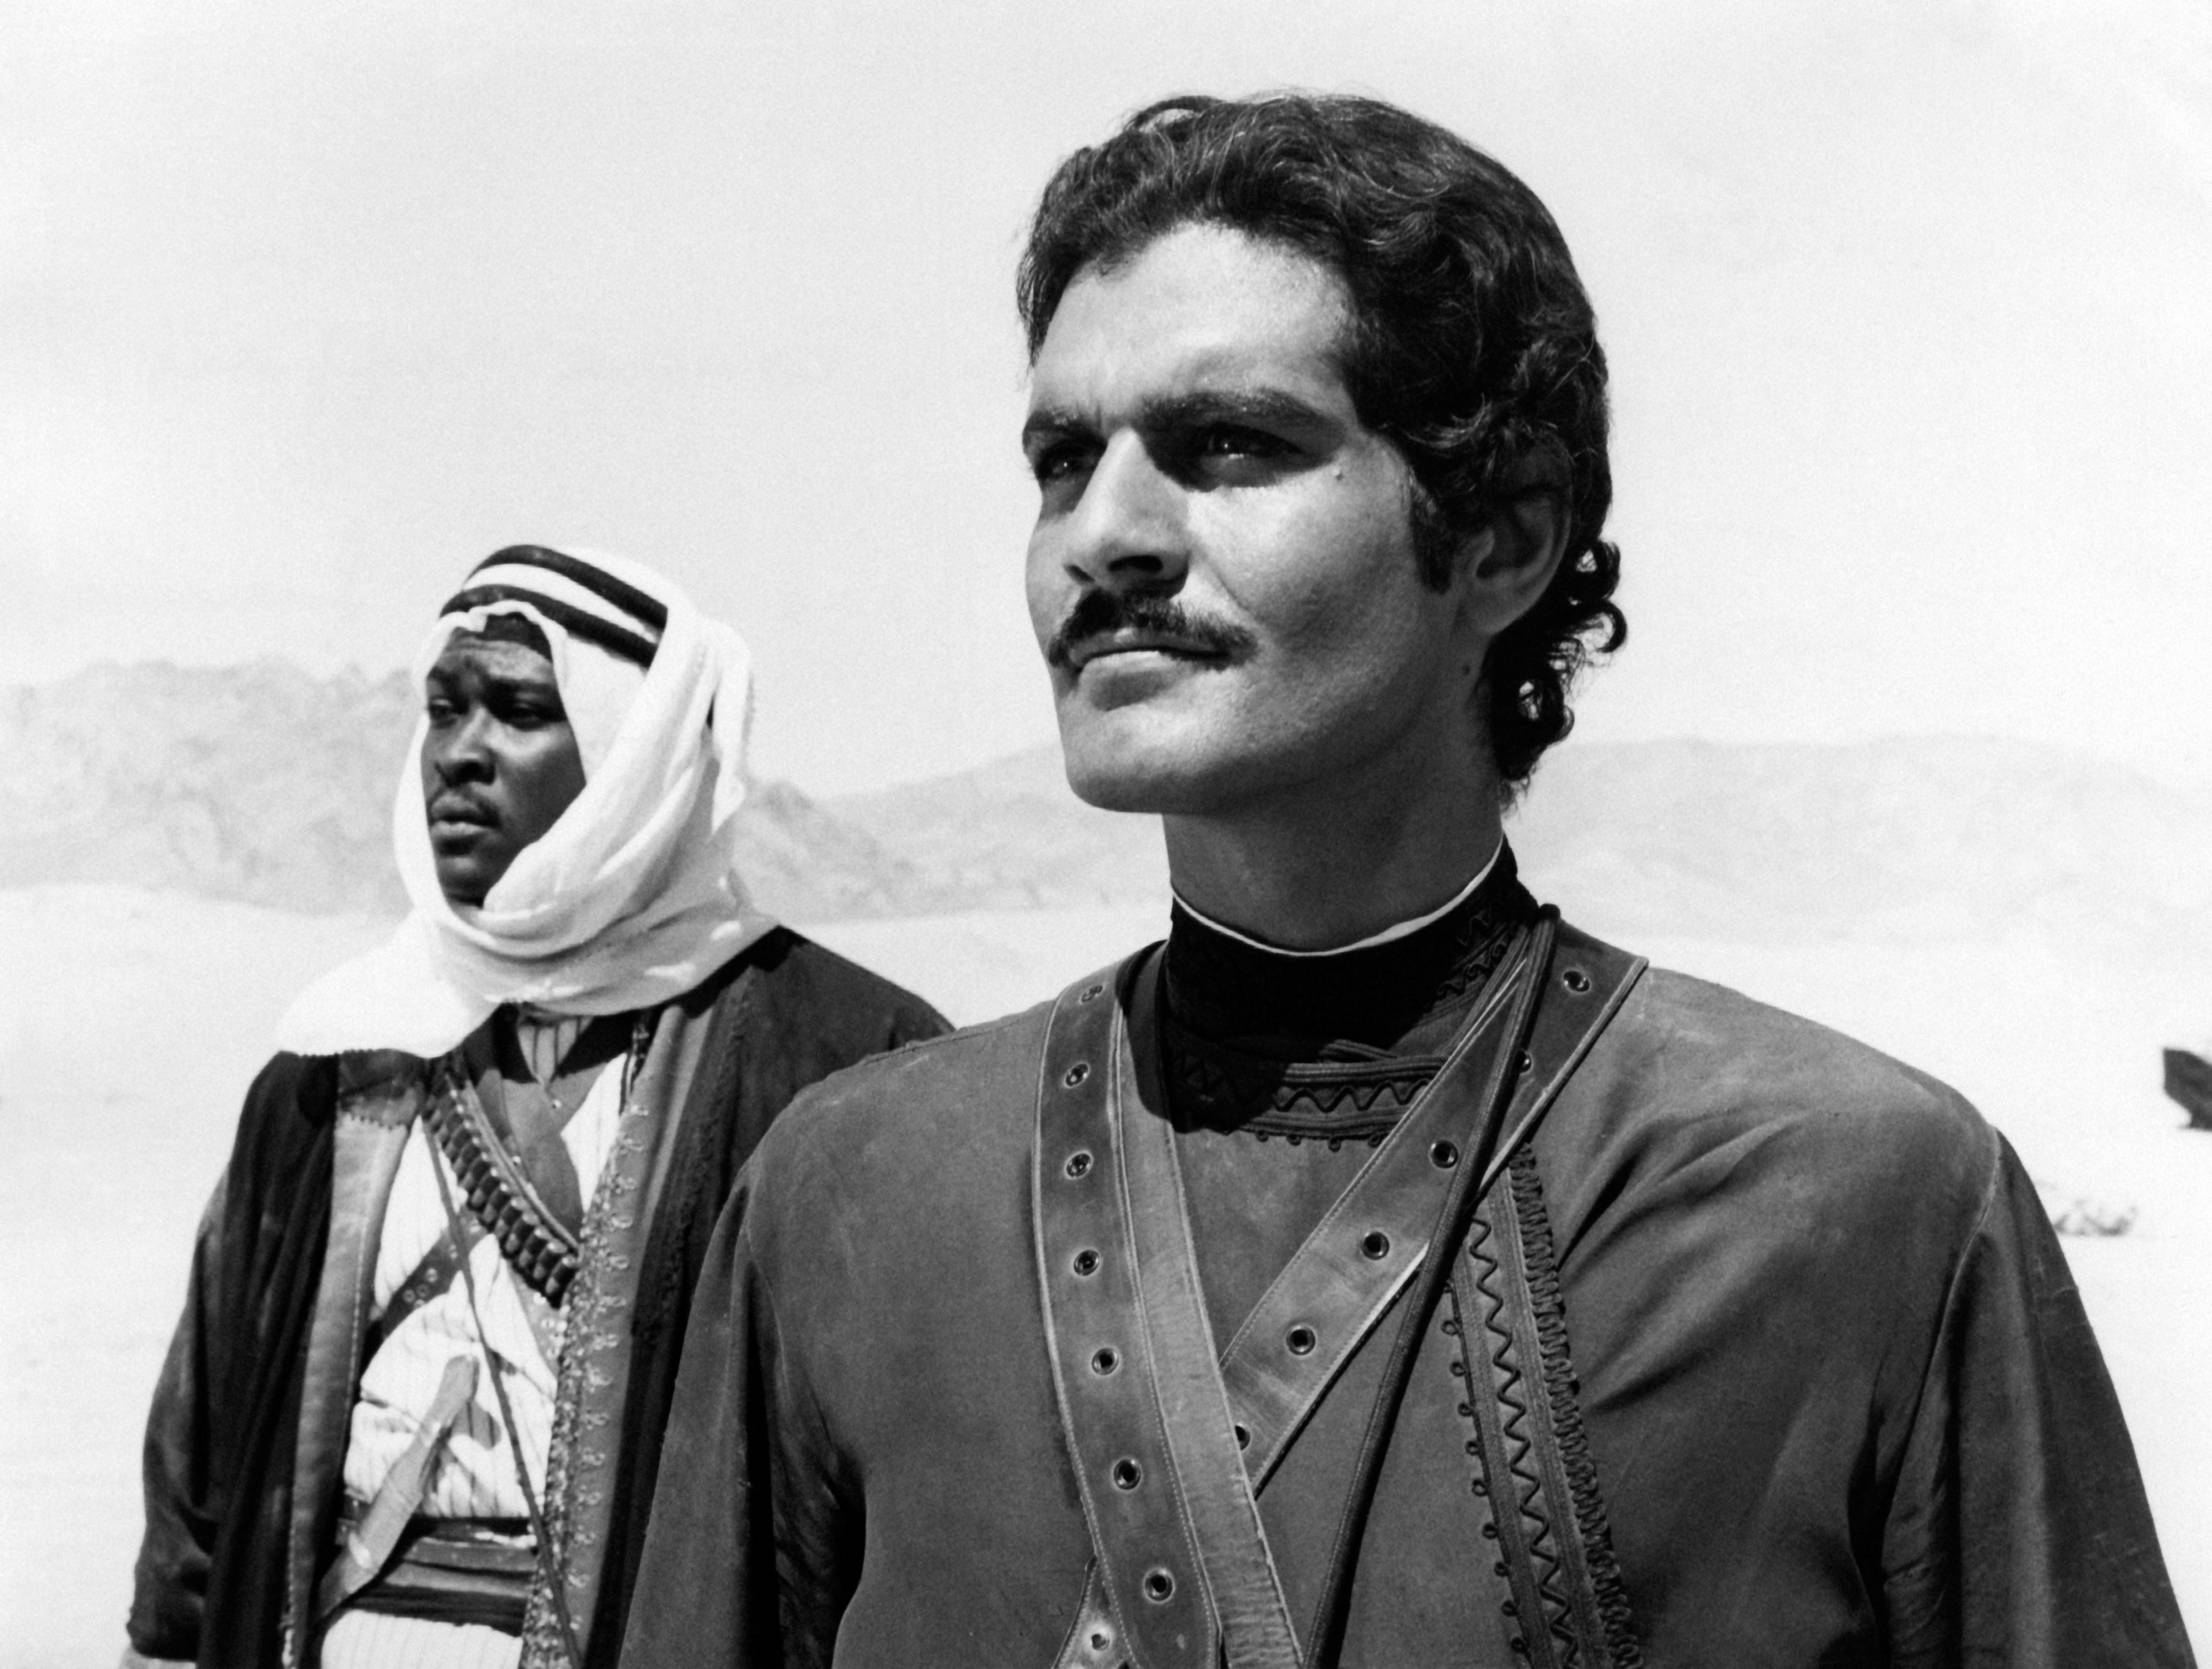 Omar Sharif Dies at 83, Star of Lawrence of Arabia and Doctor Zhivago